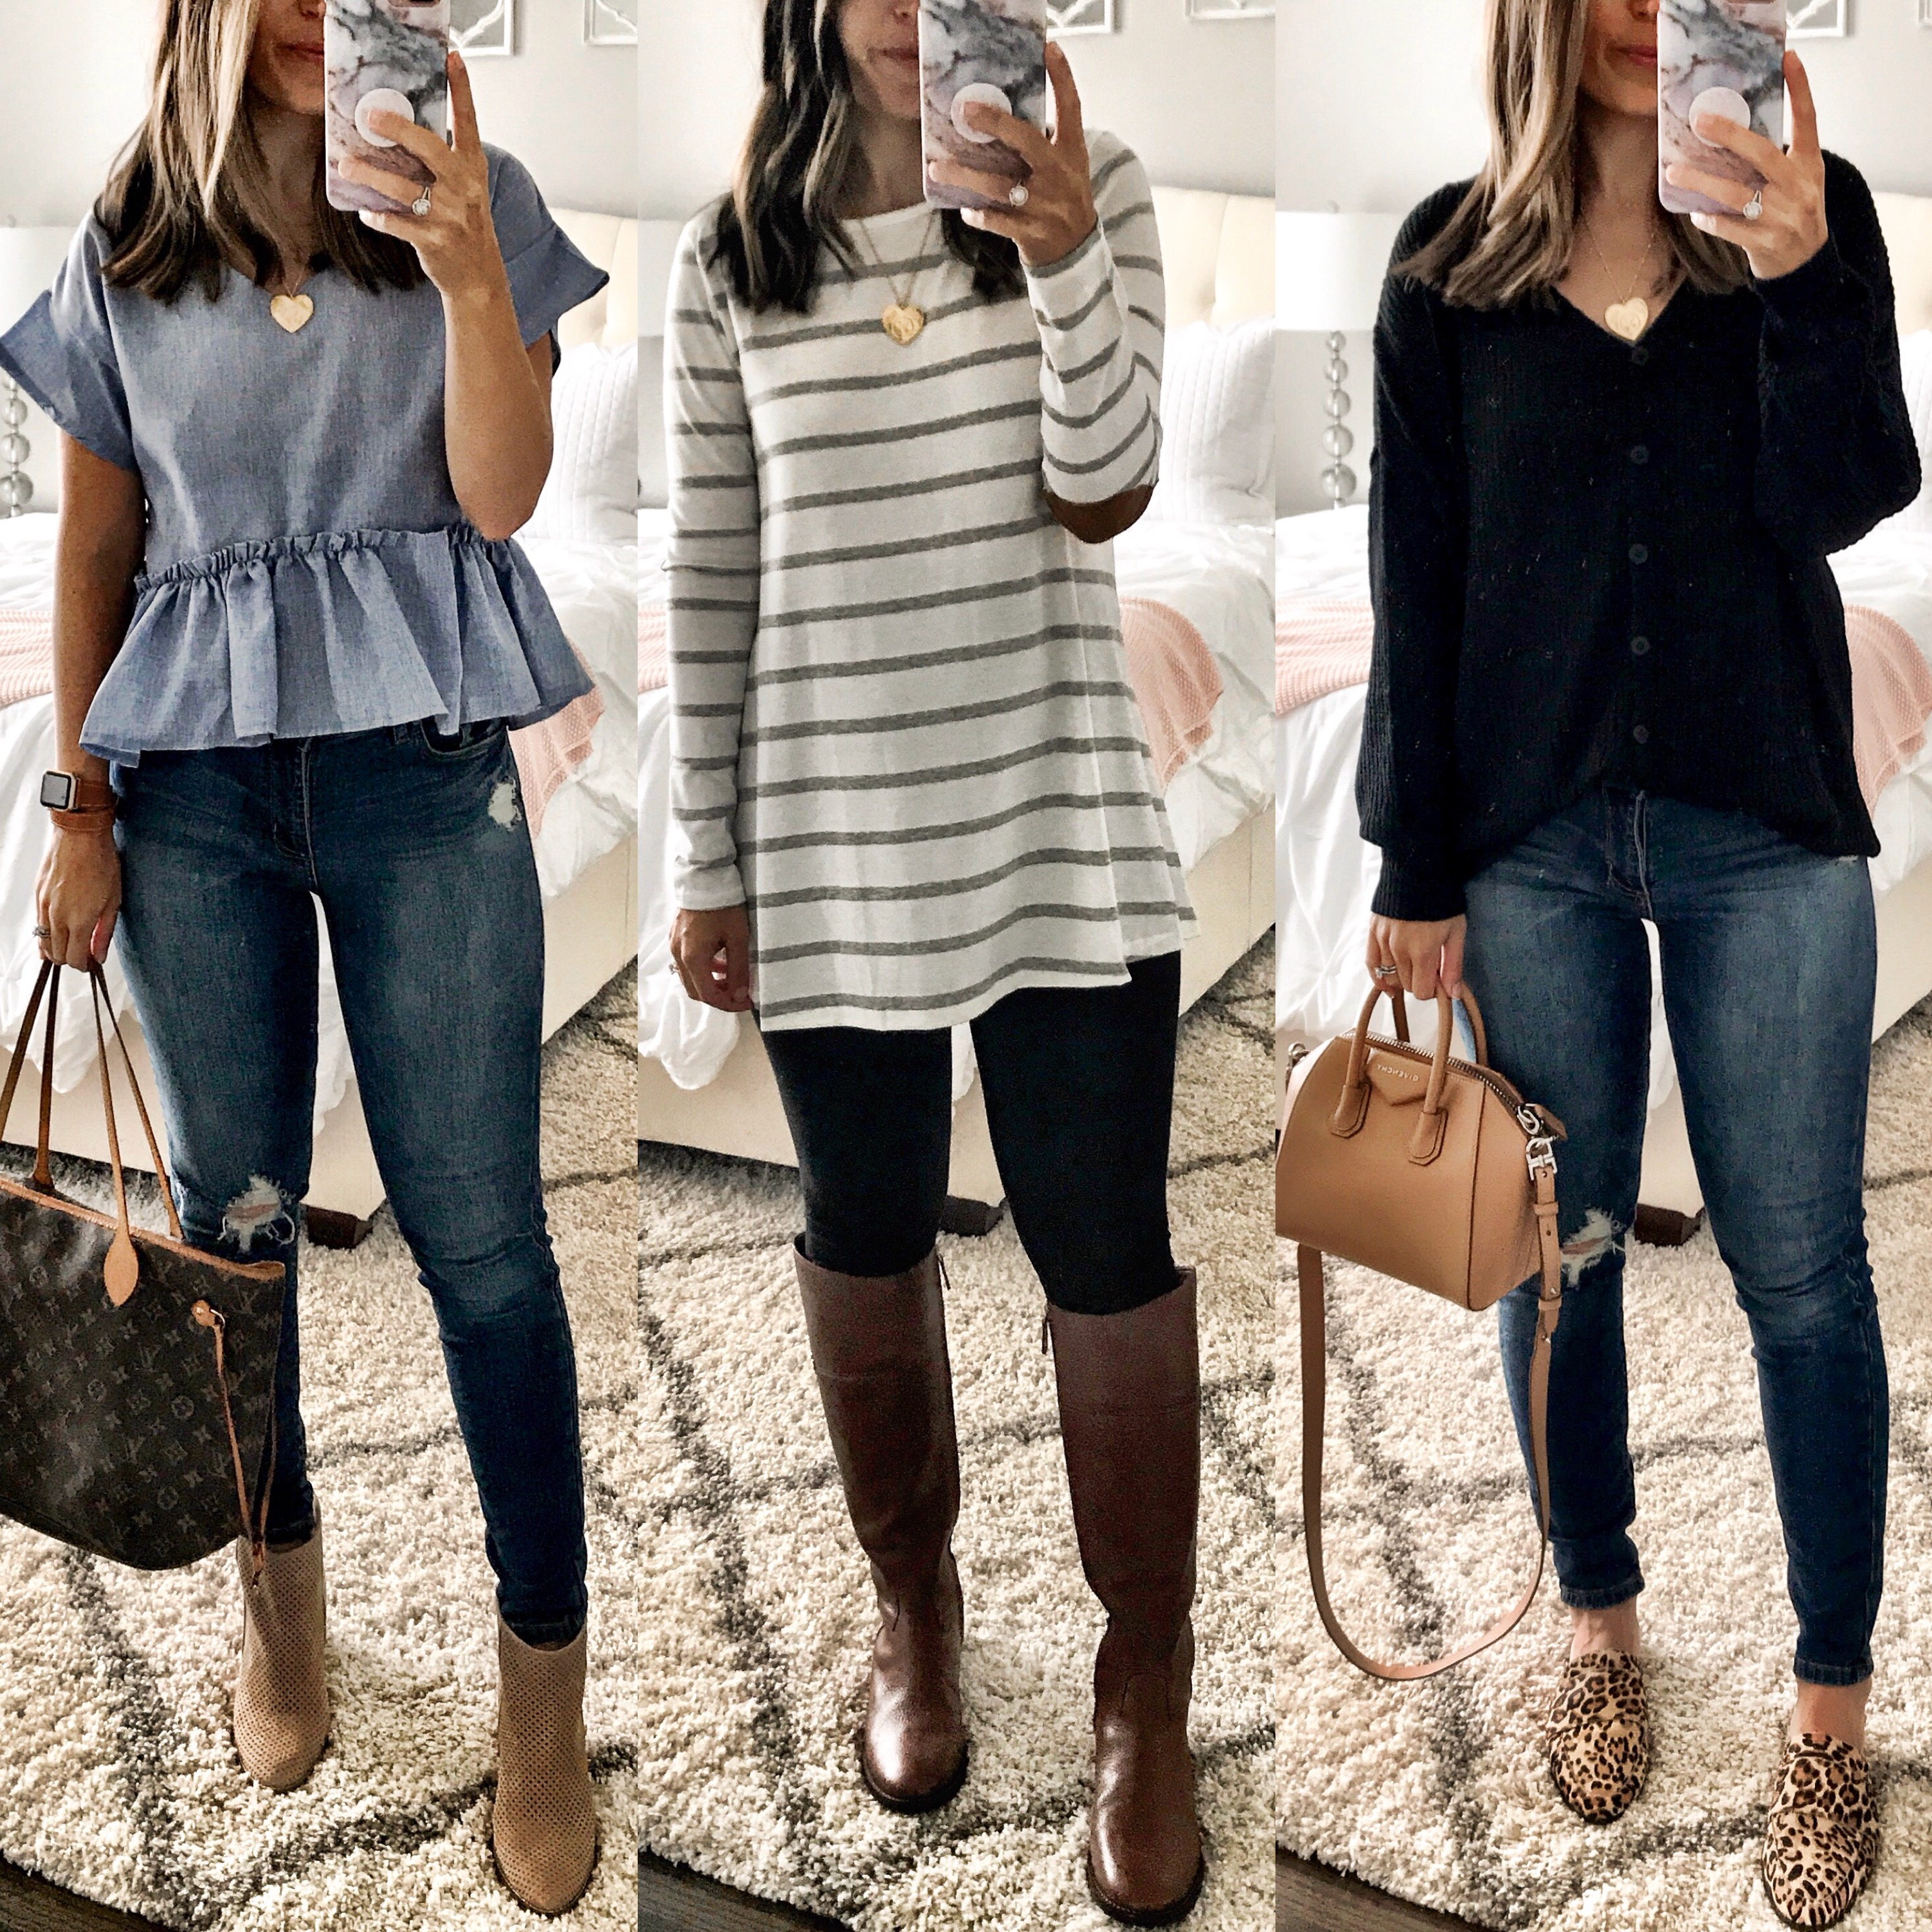 fall outfits  simple styles  fashion ideas  mrscasual